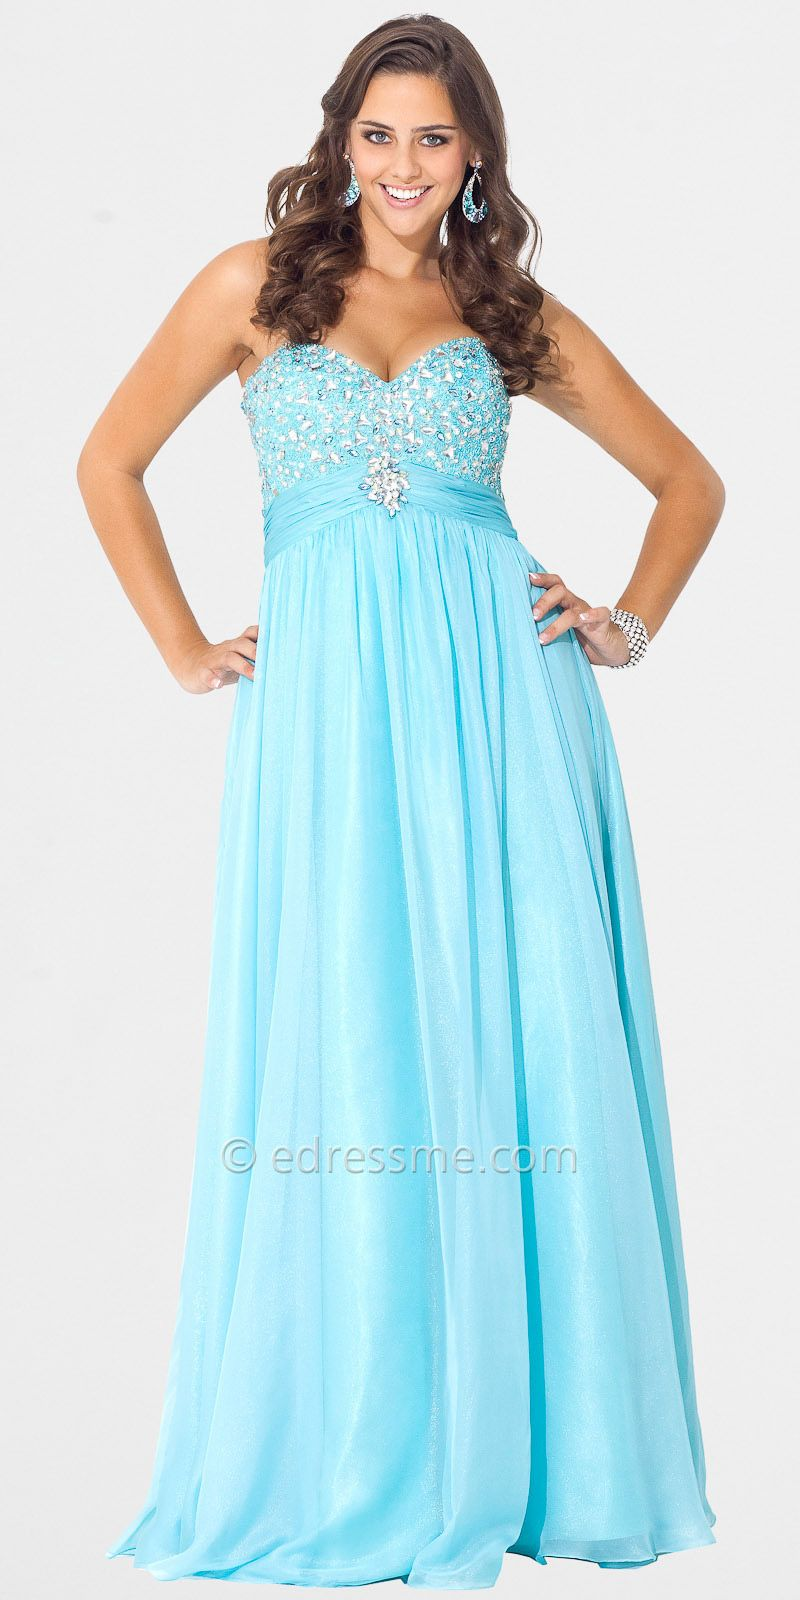 Wonderful Plus Size 2015 Prom Dresses Photos - Wedding Ideas ...